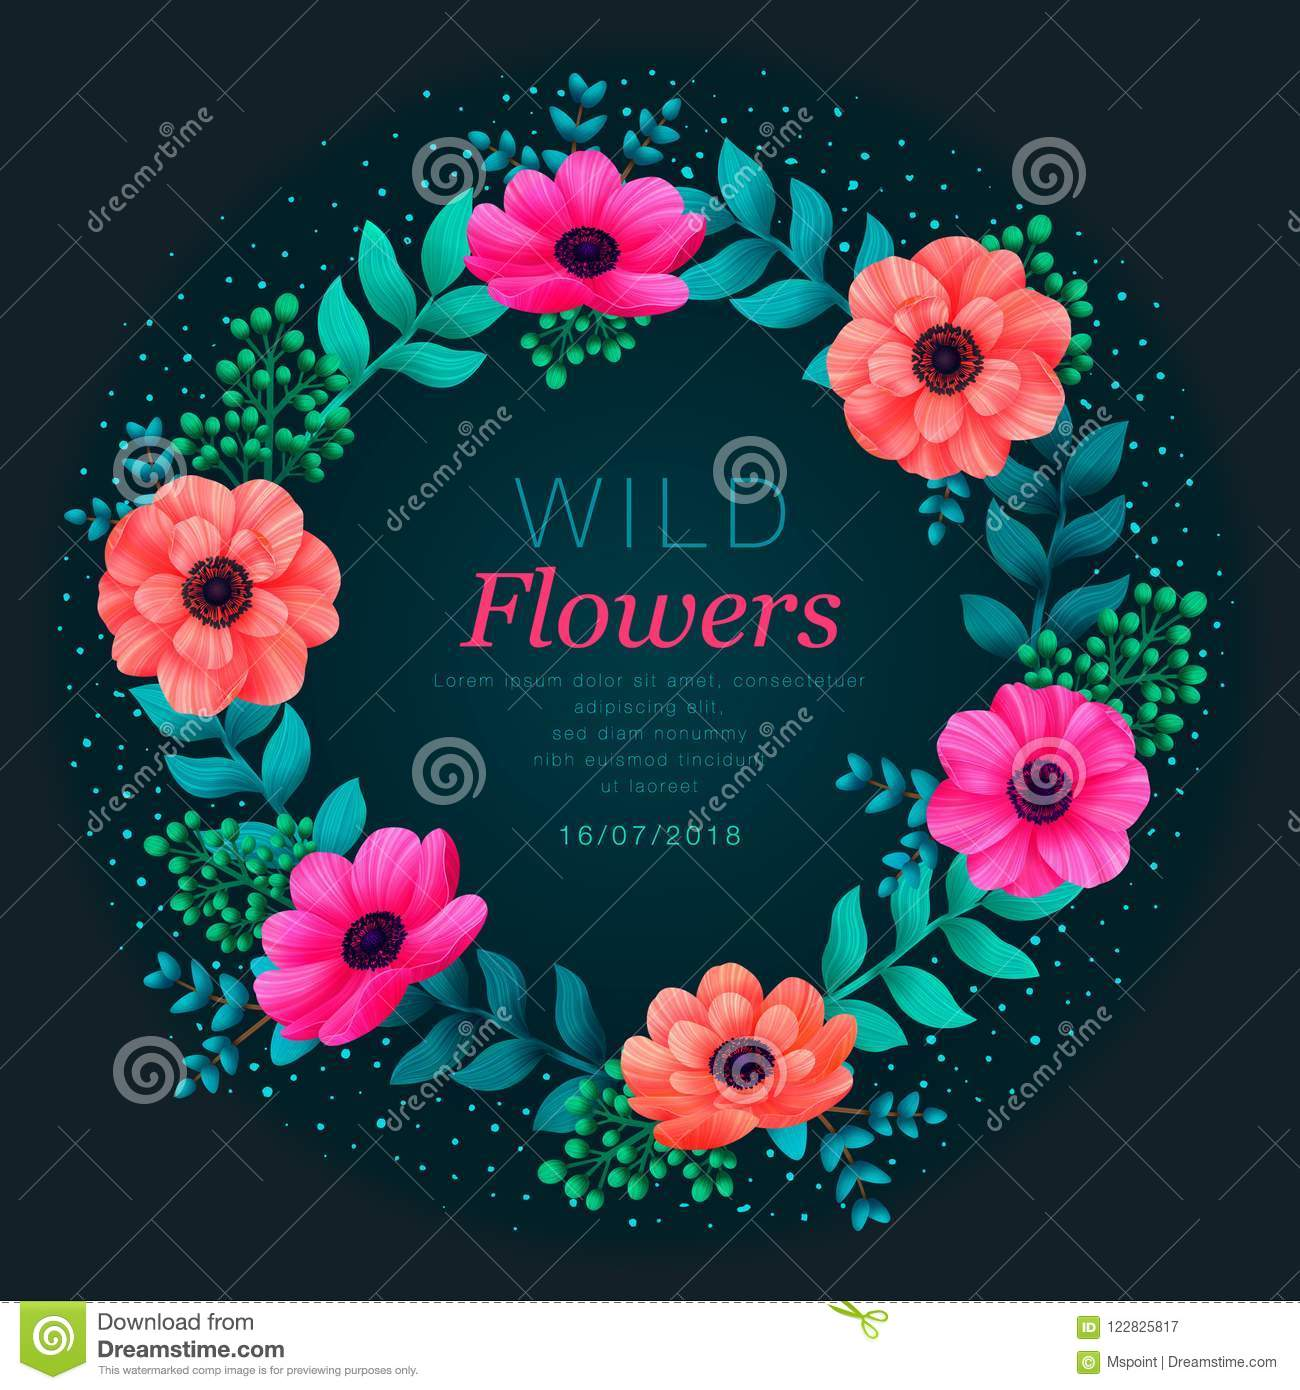 Floral circle frame. Tropical flowers trendy template. Summer Design with beautiful neon flowers and leaves with copy